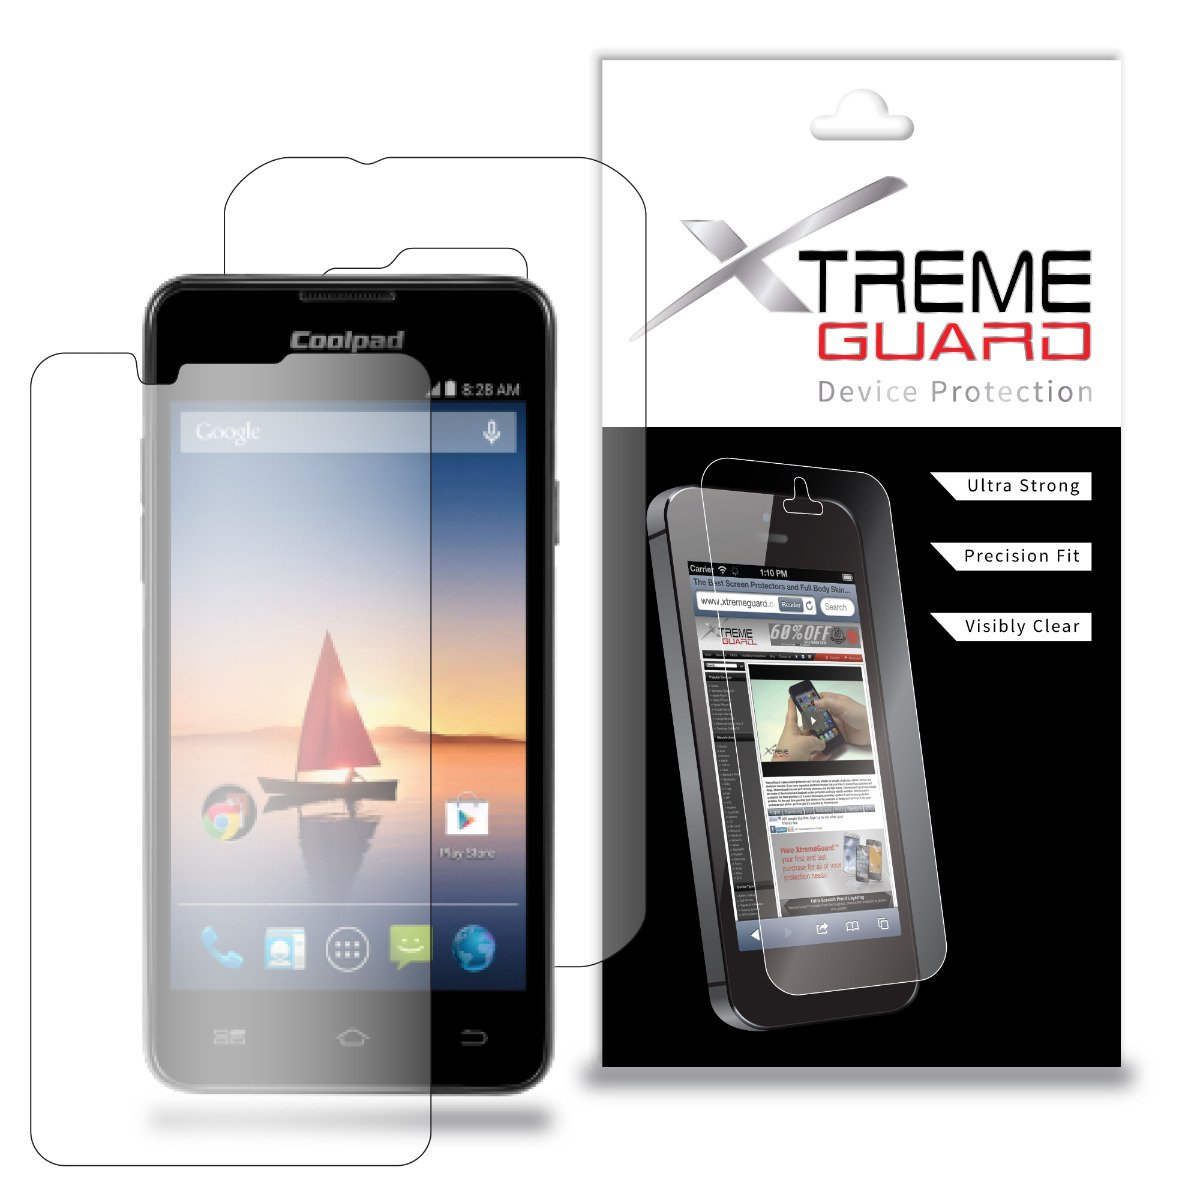 Amazon.com: XtremeGuard Full Body Screen Protector for Coolpad Arise 5560S  (Ultra Clear): Cell Phones & Accessories